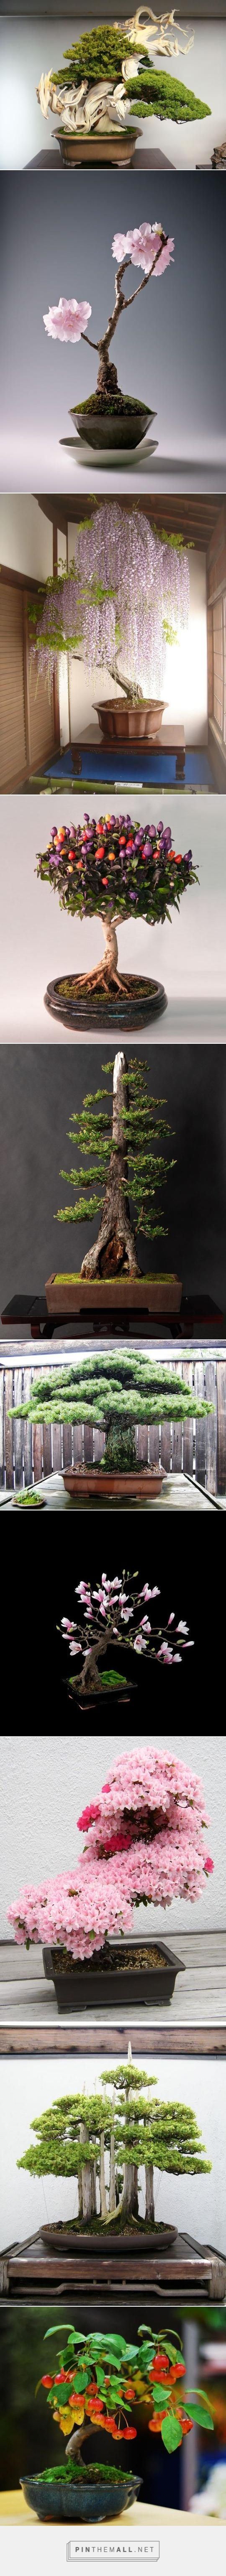 The Most Beautiful Bonsai Trees Ever.